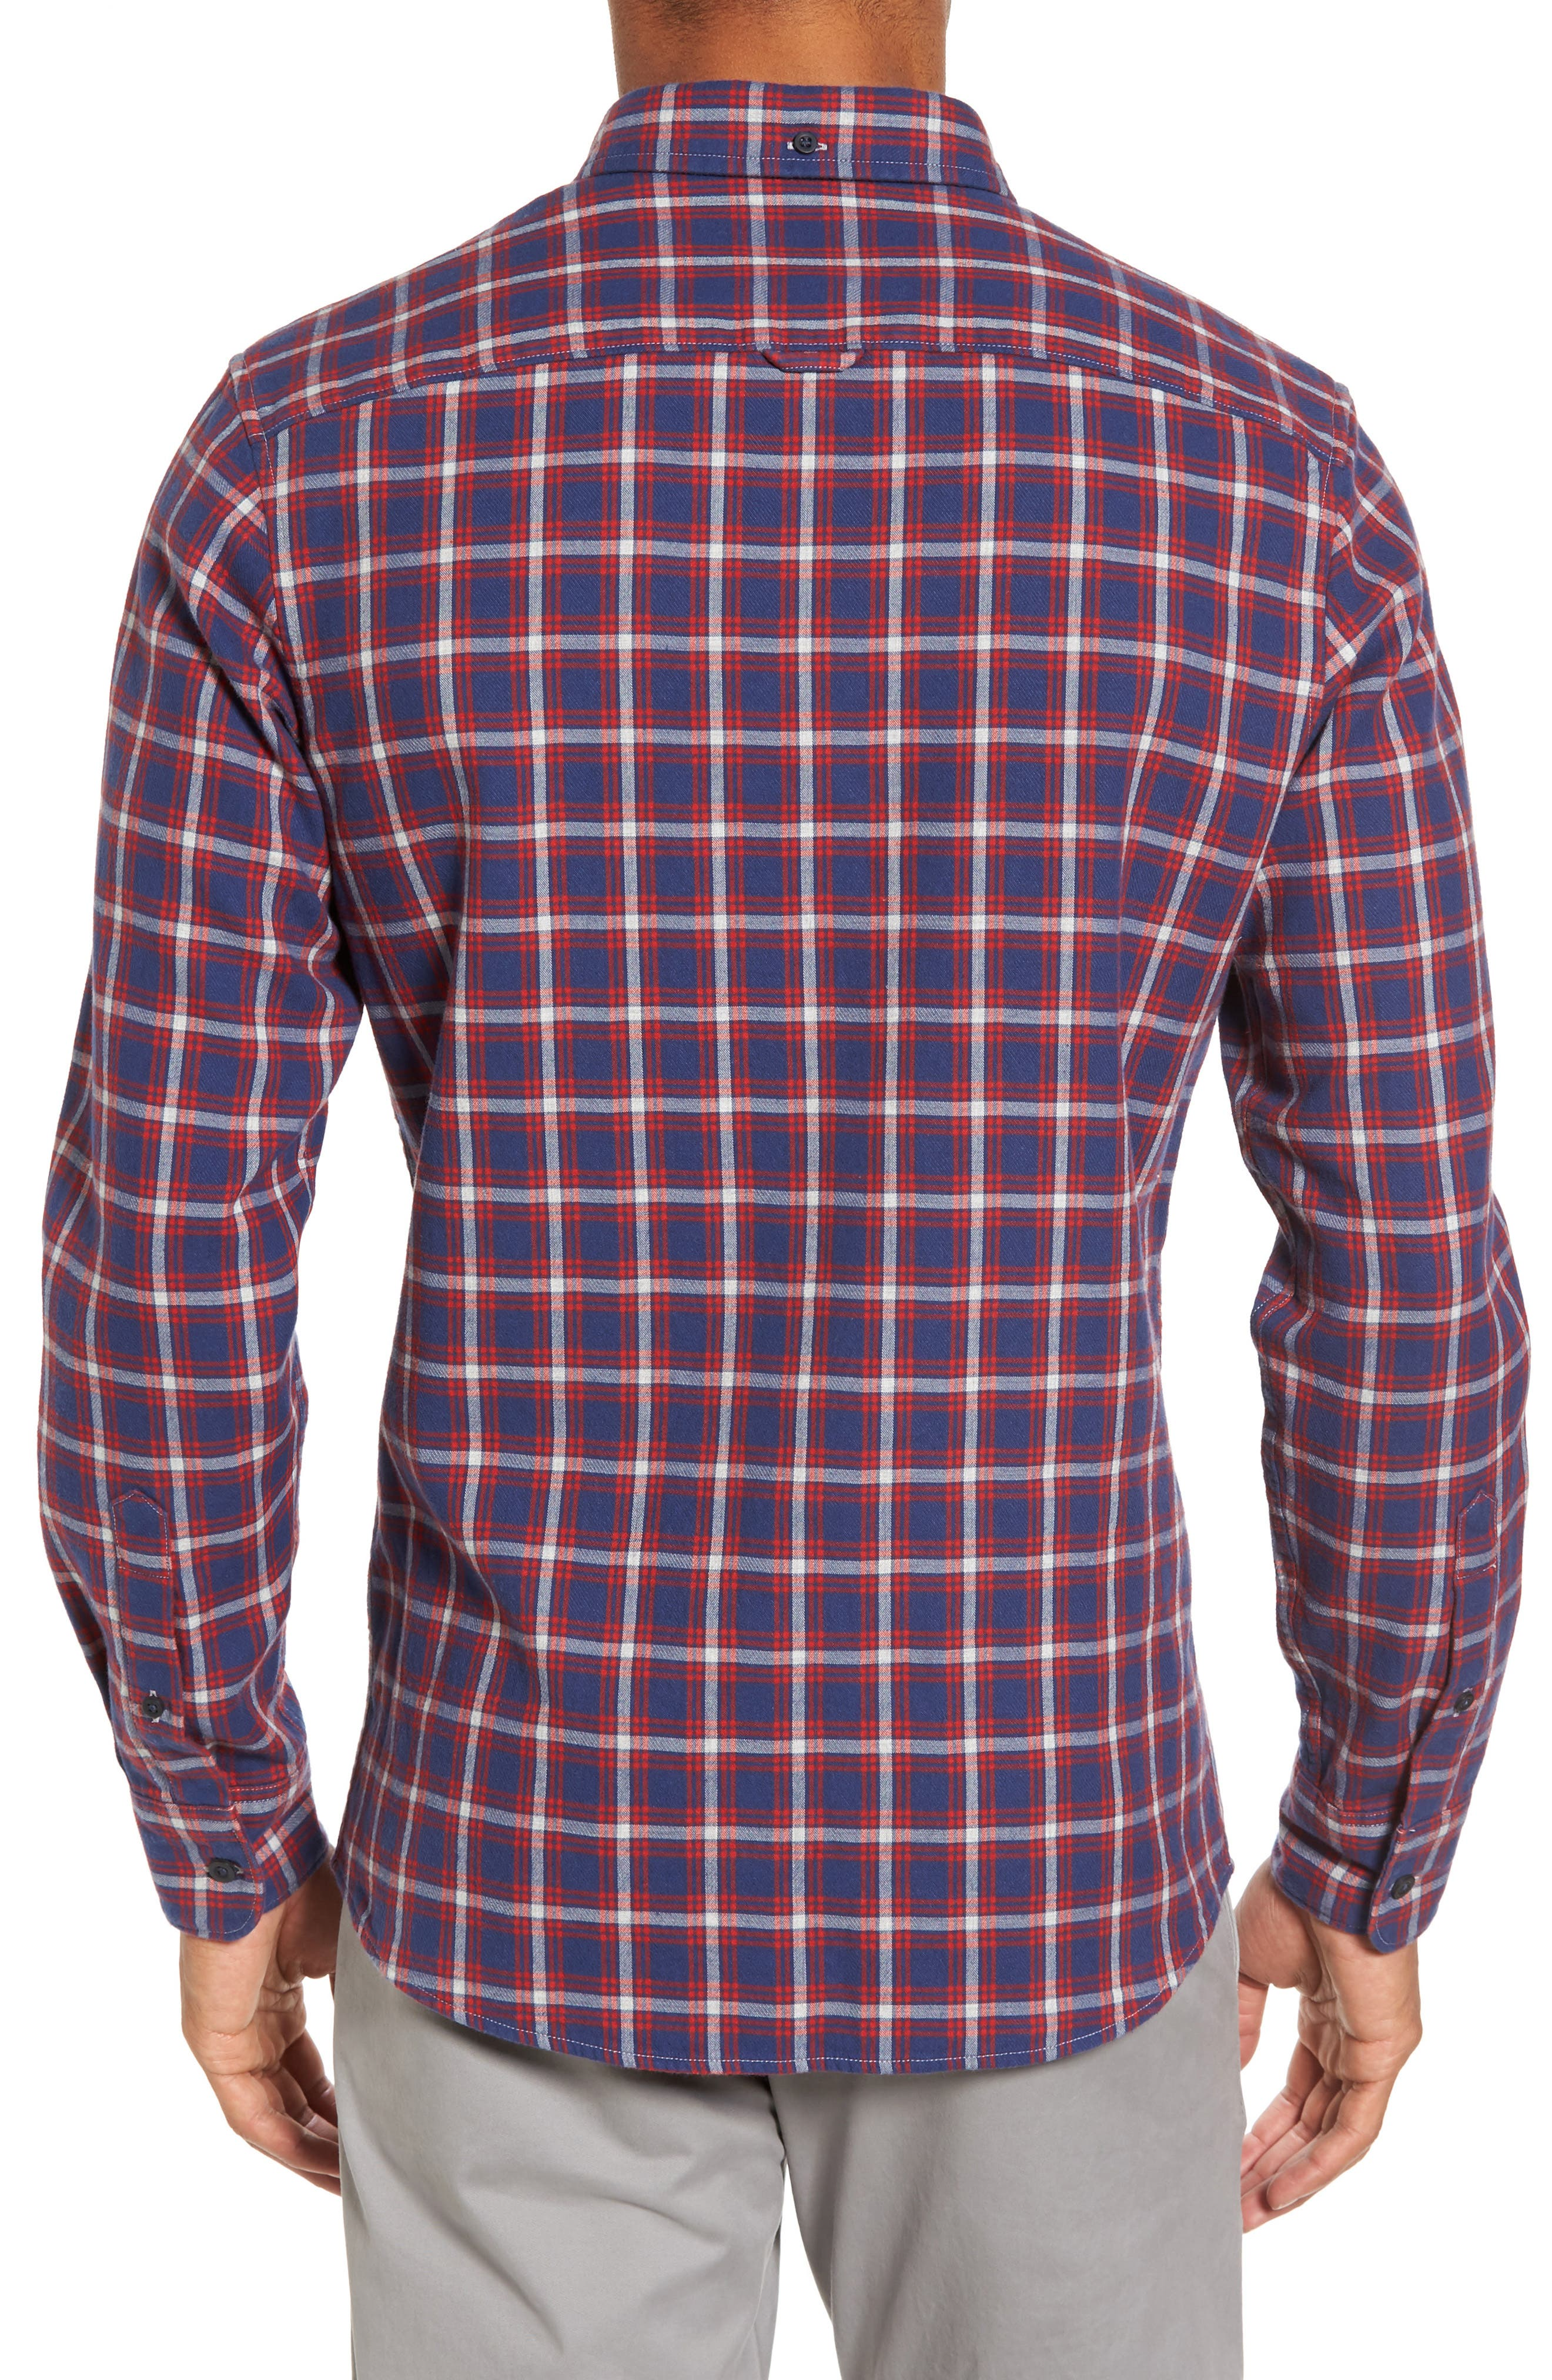 Trim Fit Duofold Check Sport Shirt,                             Alternate thumbnail 2, color,                             Navy Iris Red Plaid Duofold